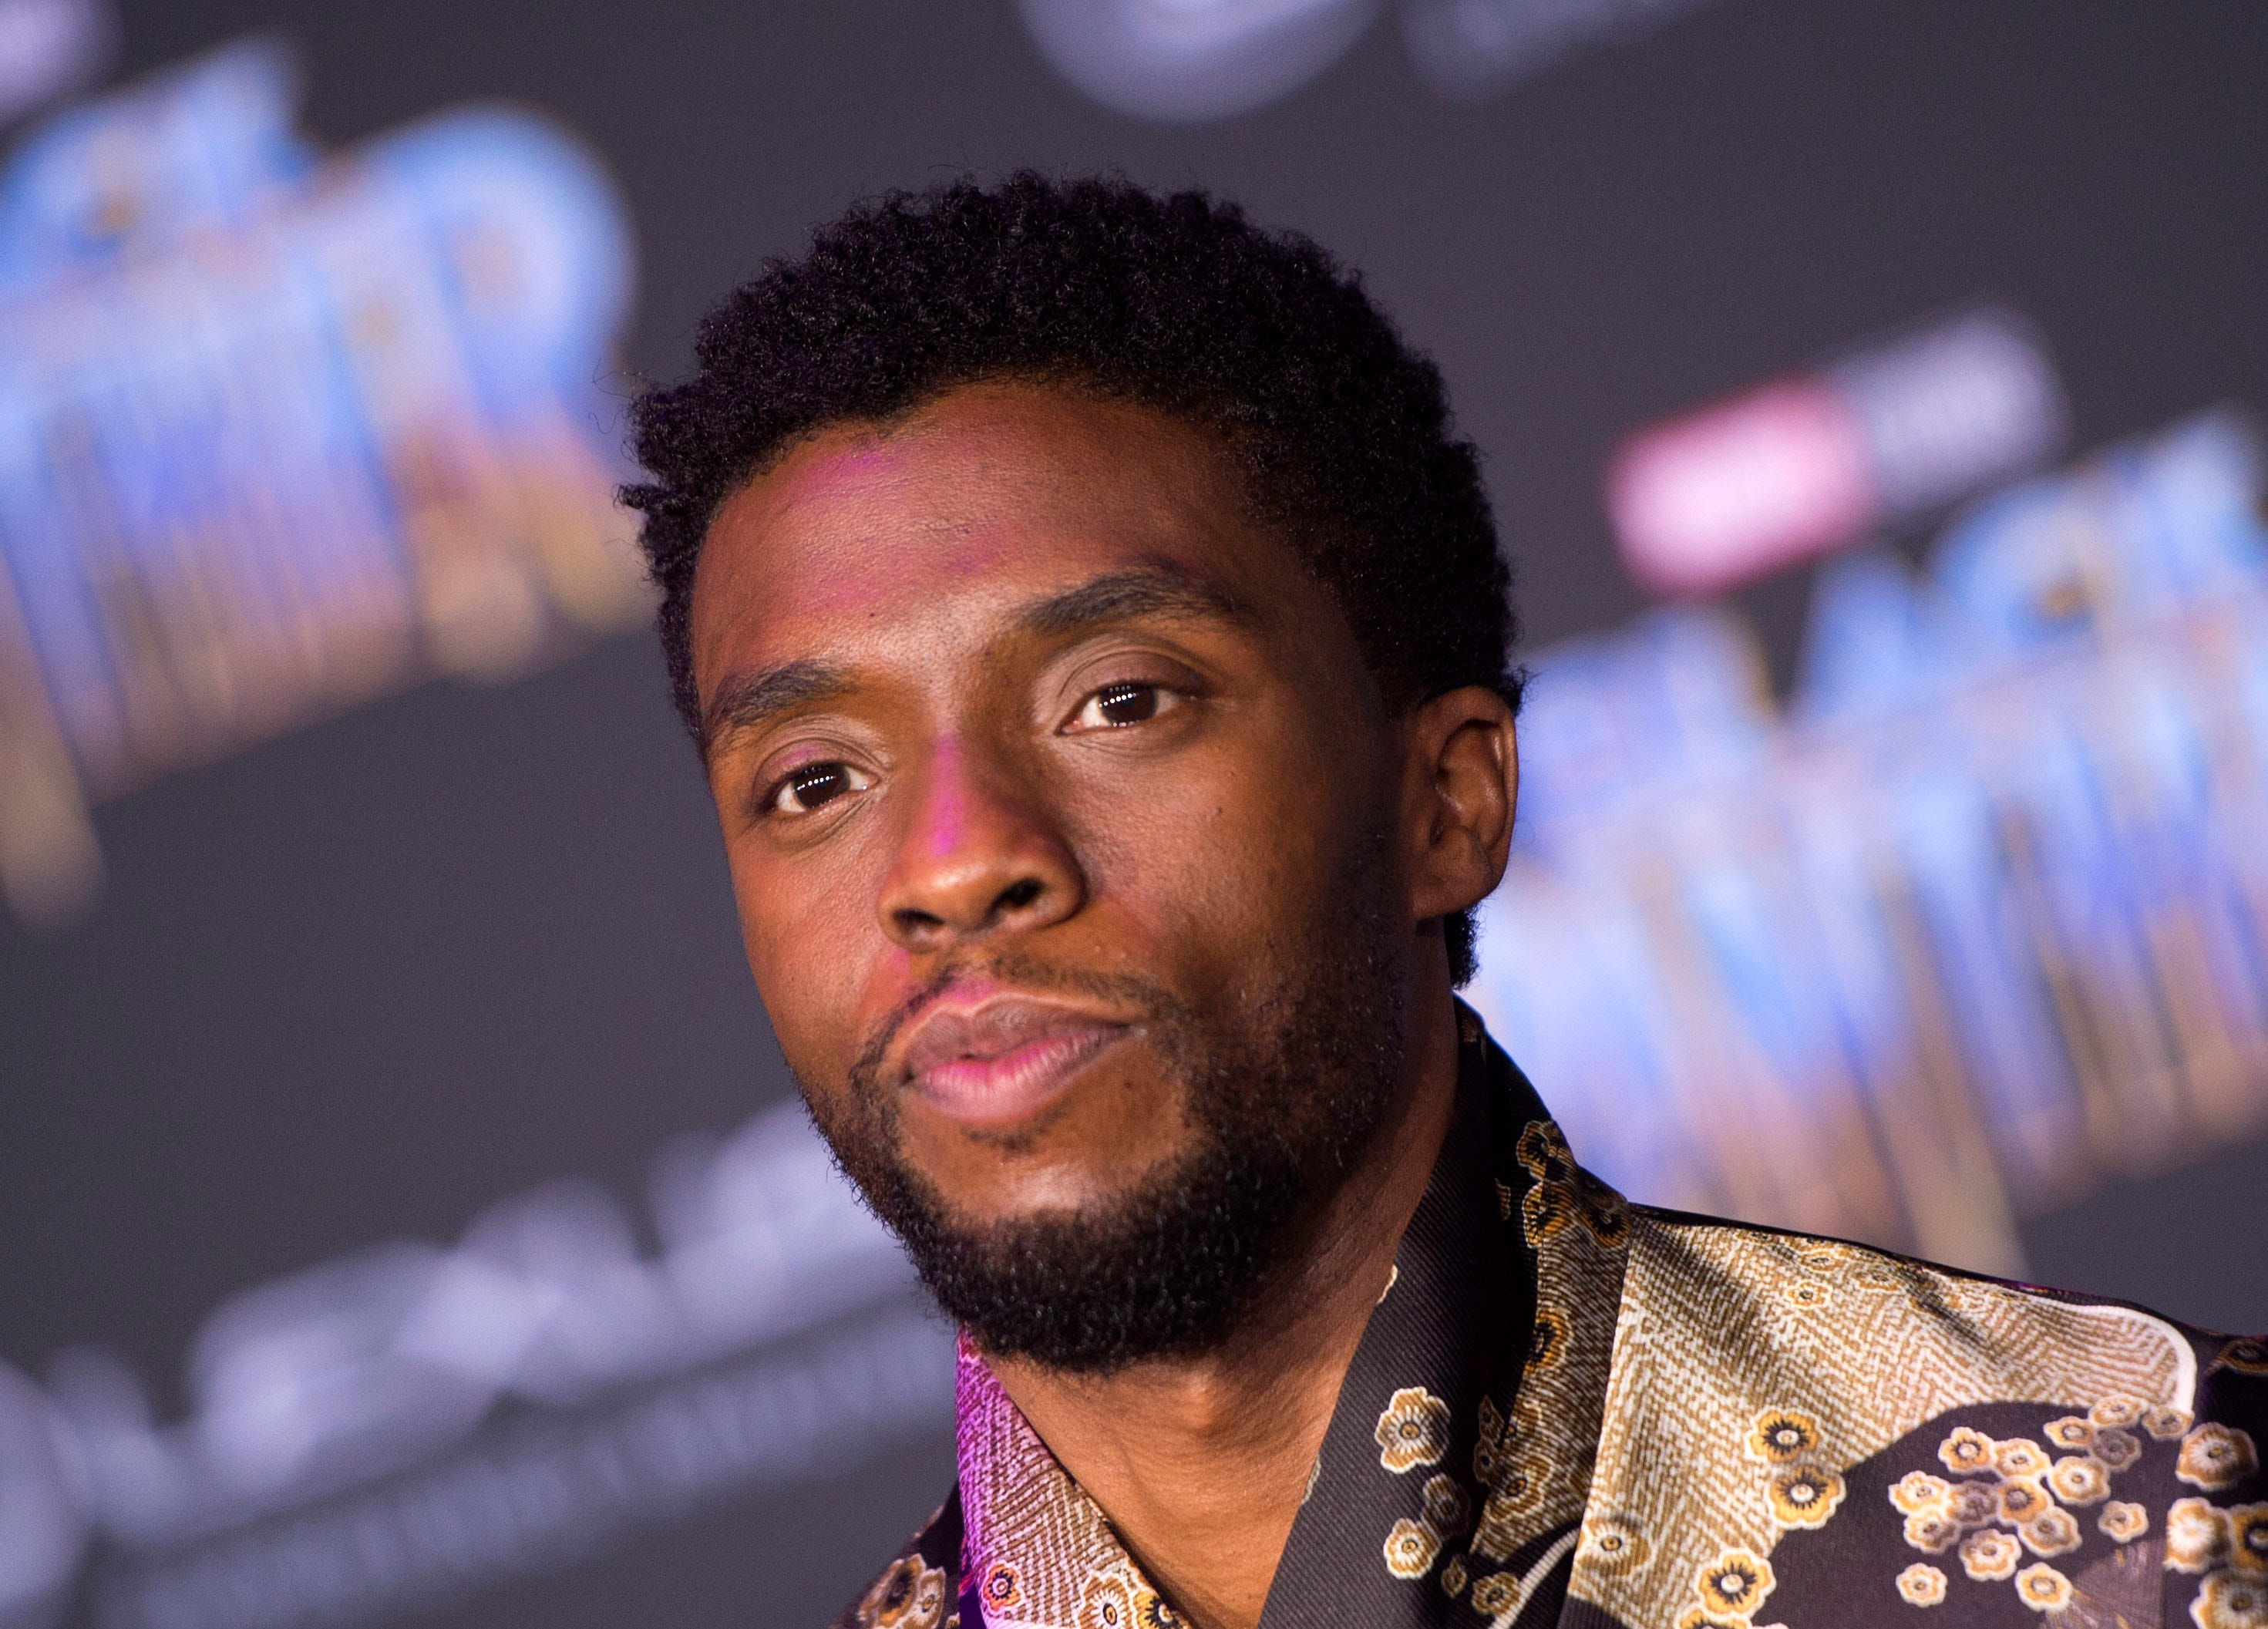 Marvel fans celebrate hearing Chadwick Boseman s final performance as T Challa in new animated trailer